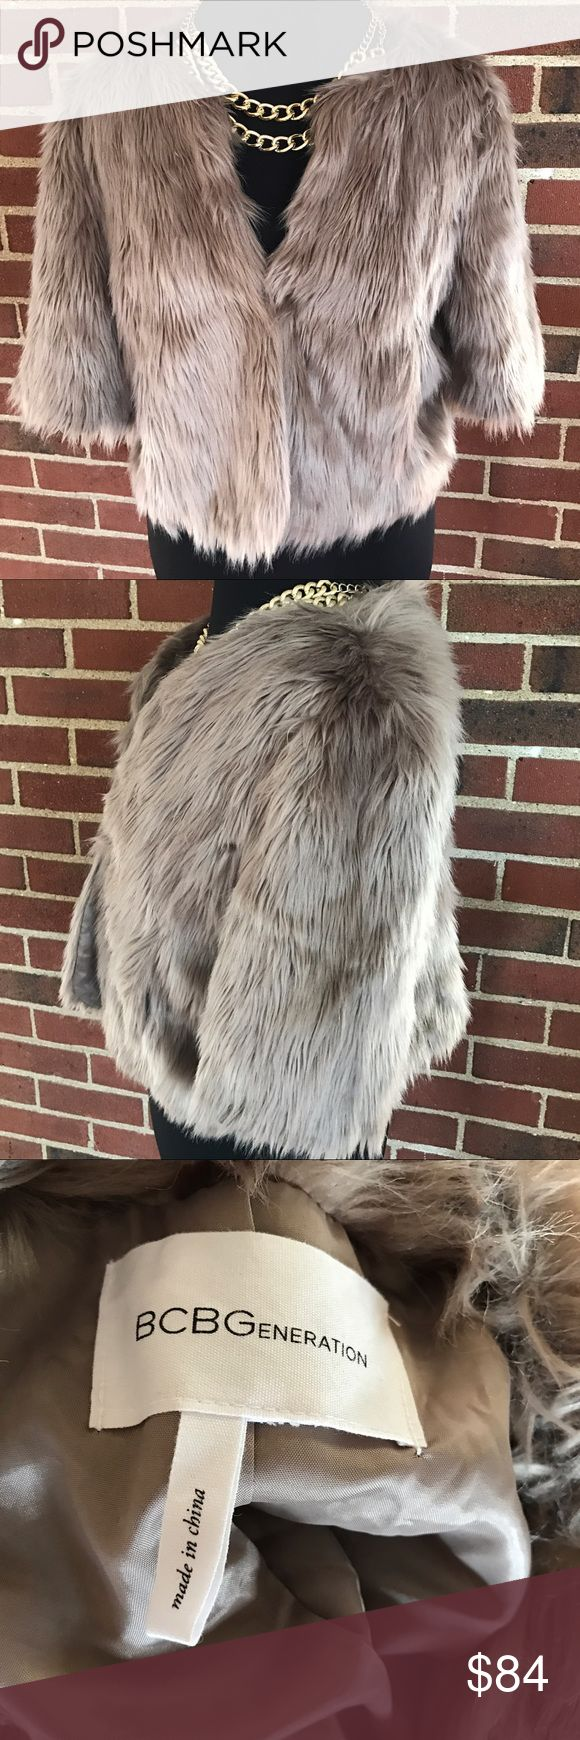 BCBGeneration Faux Fur Cropped Jacket Size Large. In like new condition, only worn once. Hook & eye closure in center of jacket. I love getting bundle offers, so please don't be shy❤️ Sorry, no trades. From a smoke free & pet free home. BCBGeneration Jackets & Coats